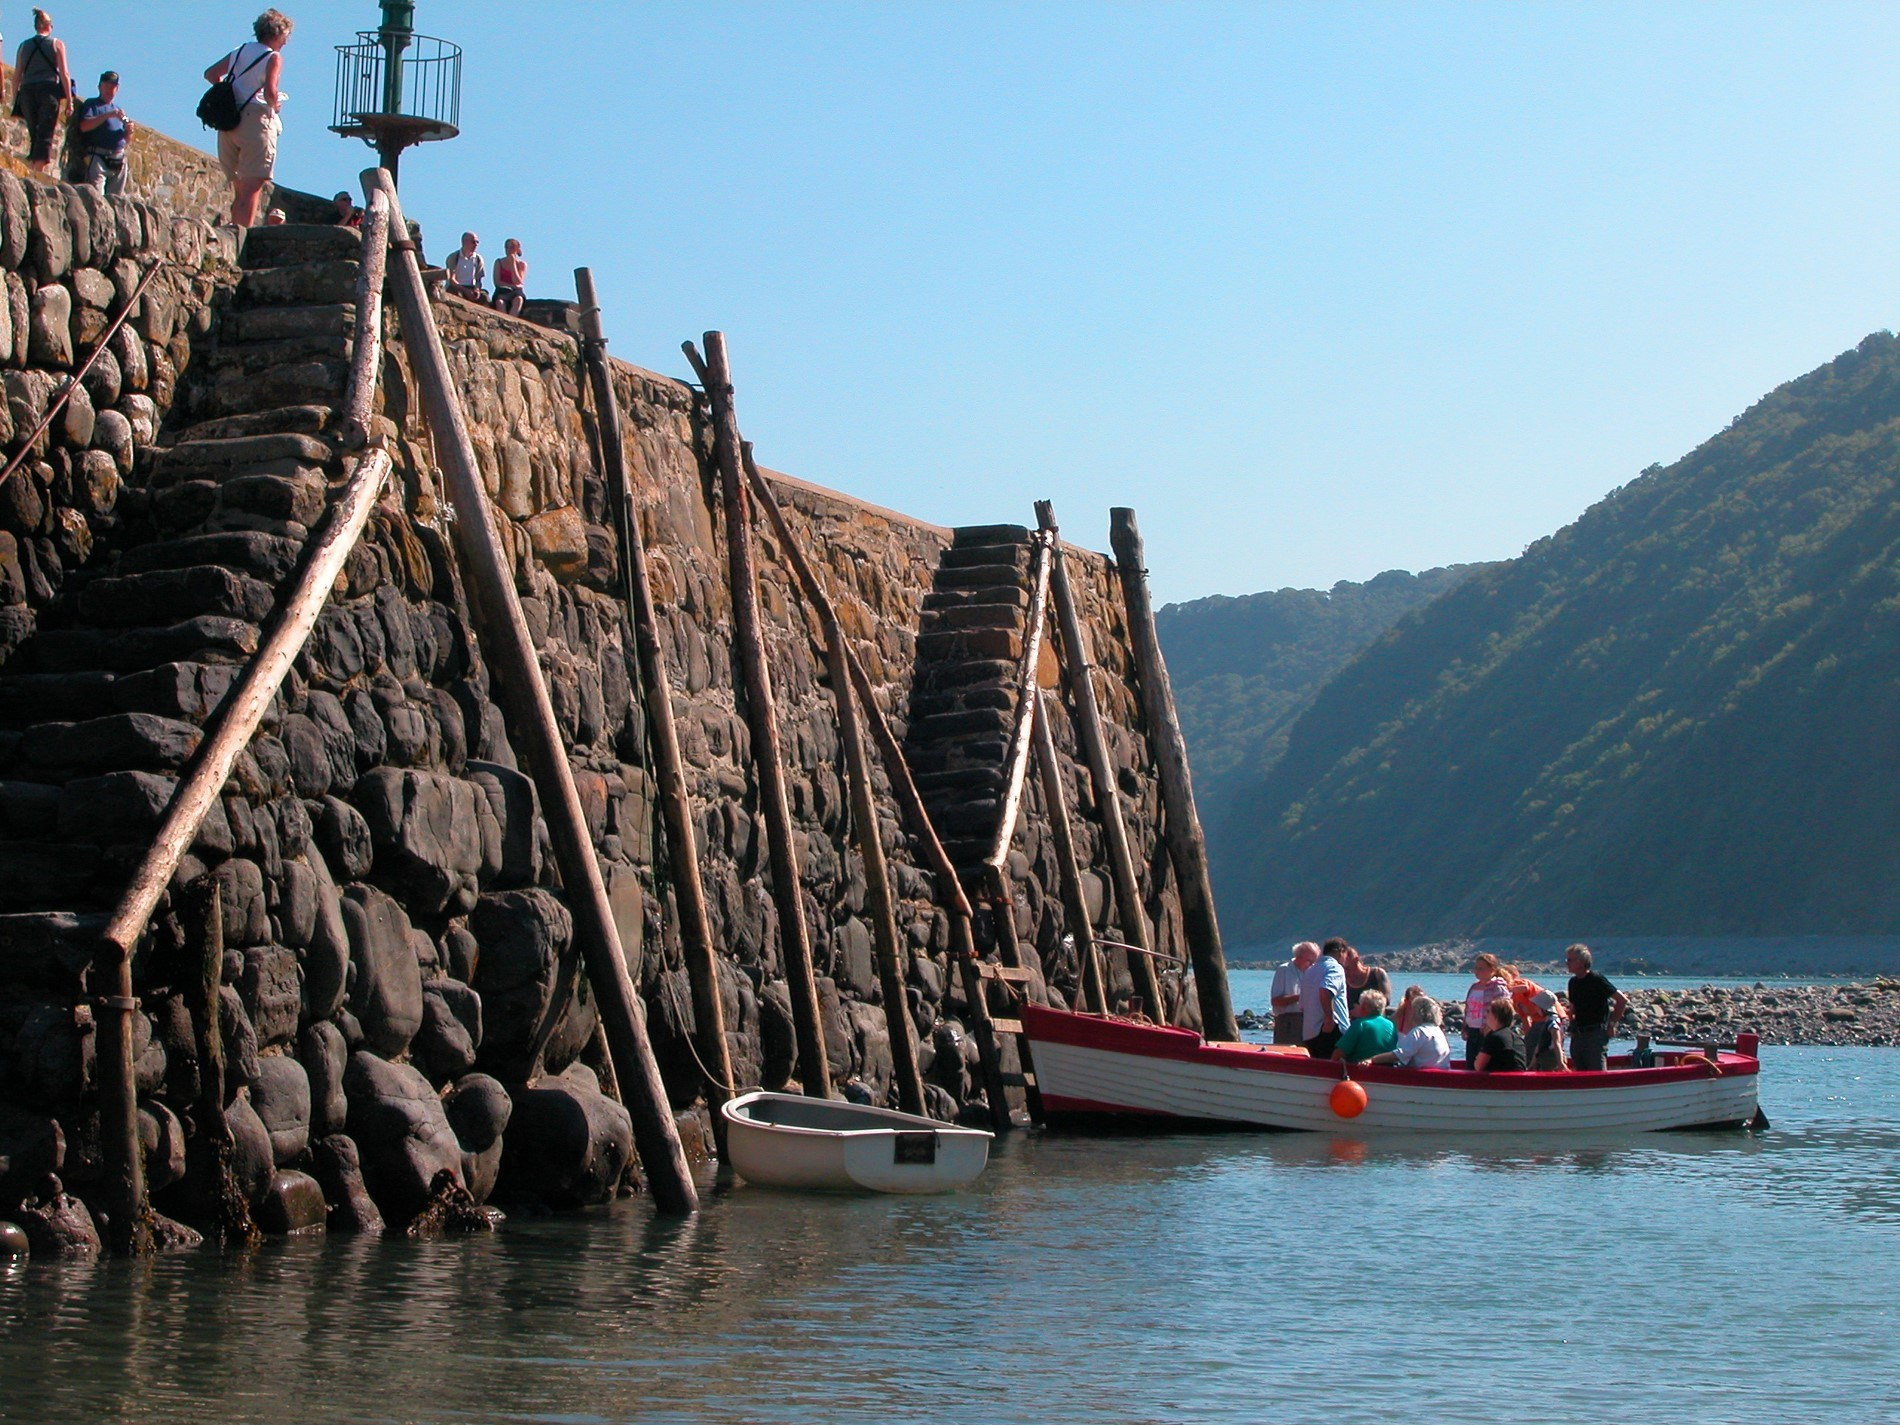 Visit Clovelly, a short drive from the property